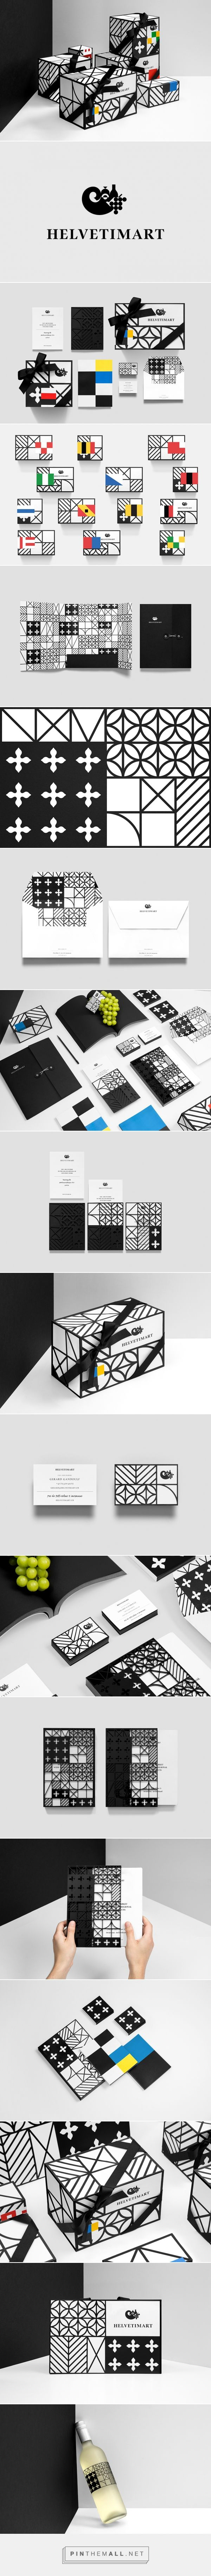 Helvetimart Food Market Branding and Packaging by Anagrama | Fivestar Branding Agency – Design and Branding Agency & Curated Inspiration Gallery